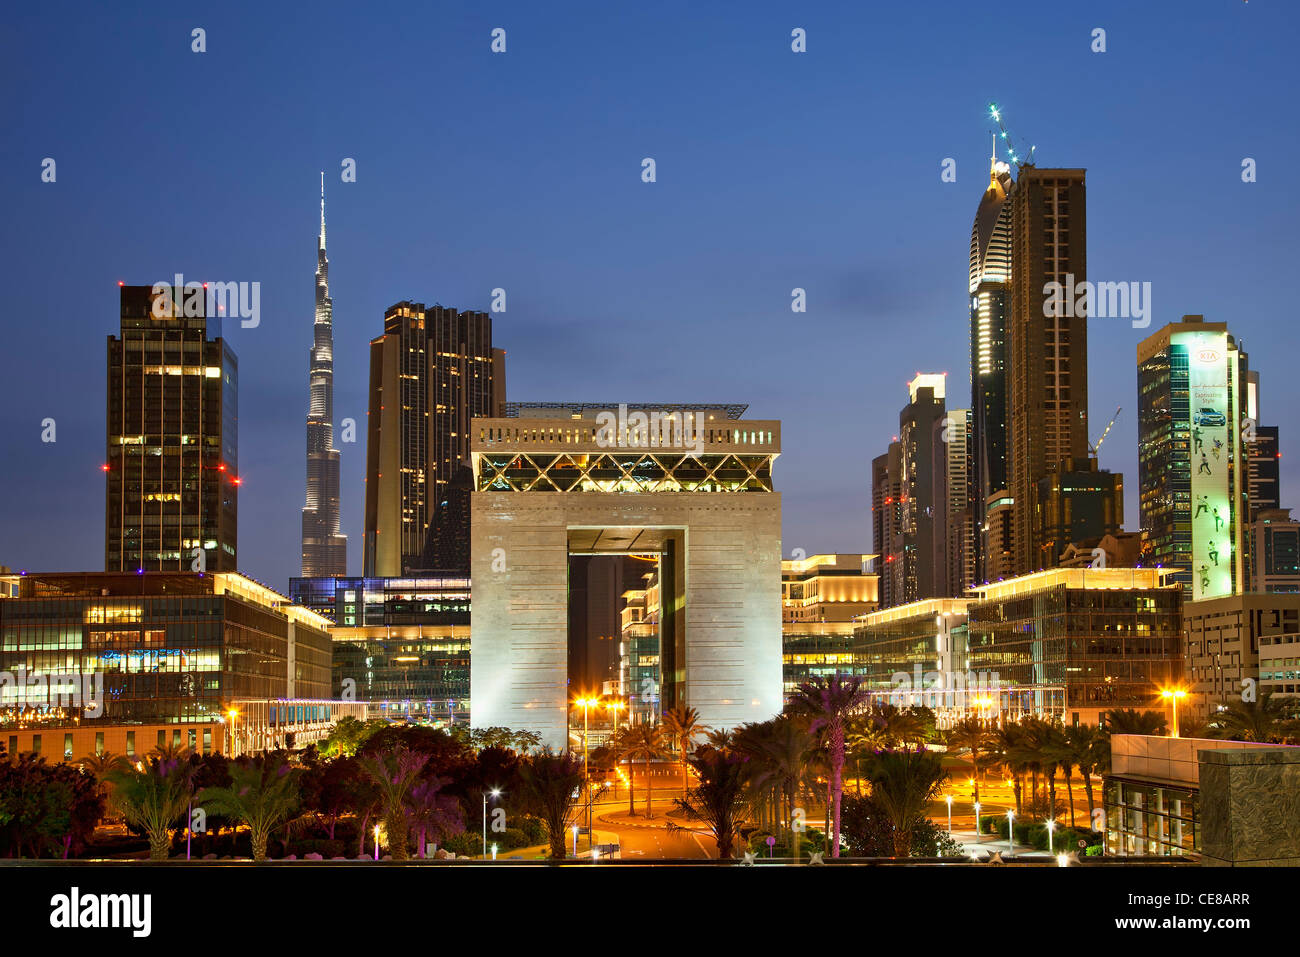 Asia, Arabia, Dubai Emirate, Dubai, Gate Building and Financial District at Dusk - Stock Image